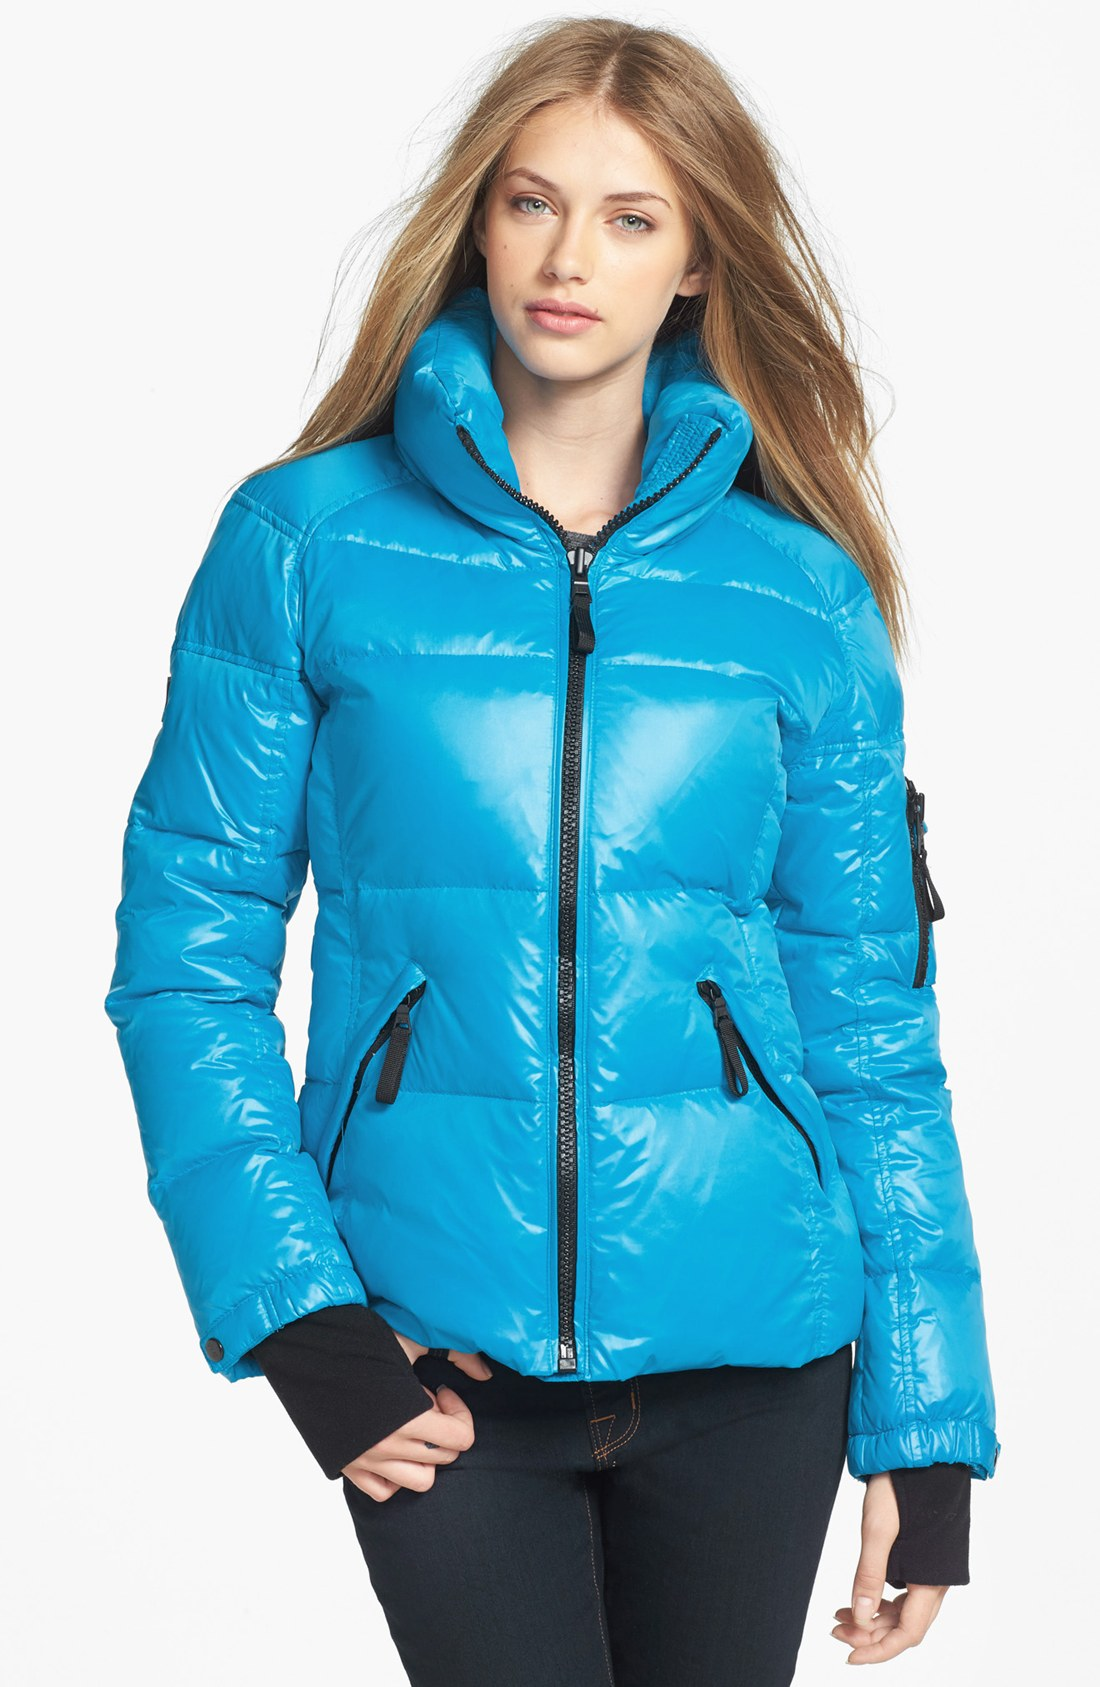 Freestyle clothing store Cheap clothing stores